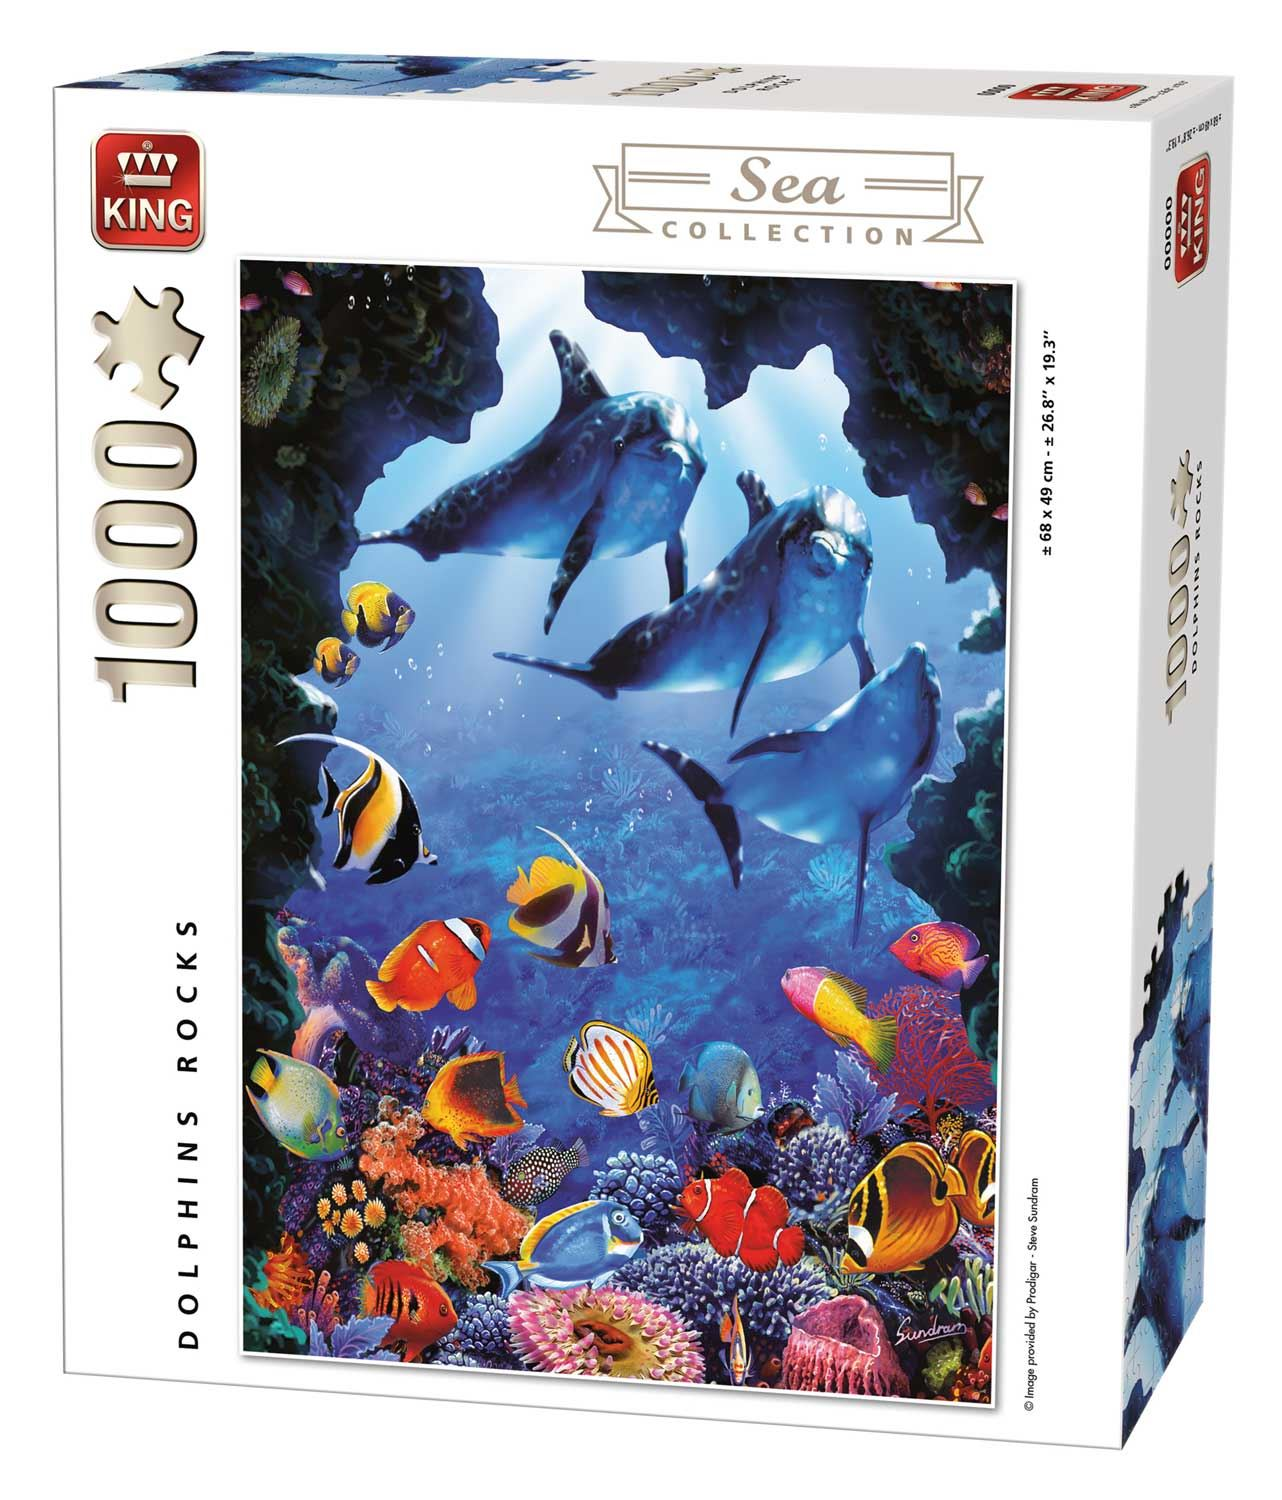 King Dolphins Rocks Jigsaw Puzzle (1000 Pieces)